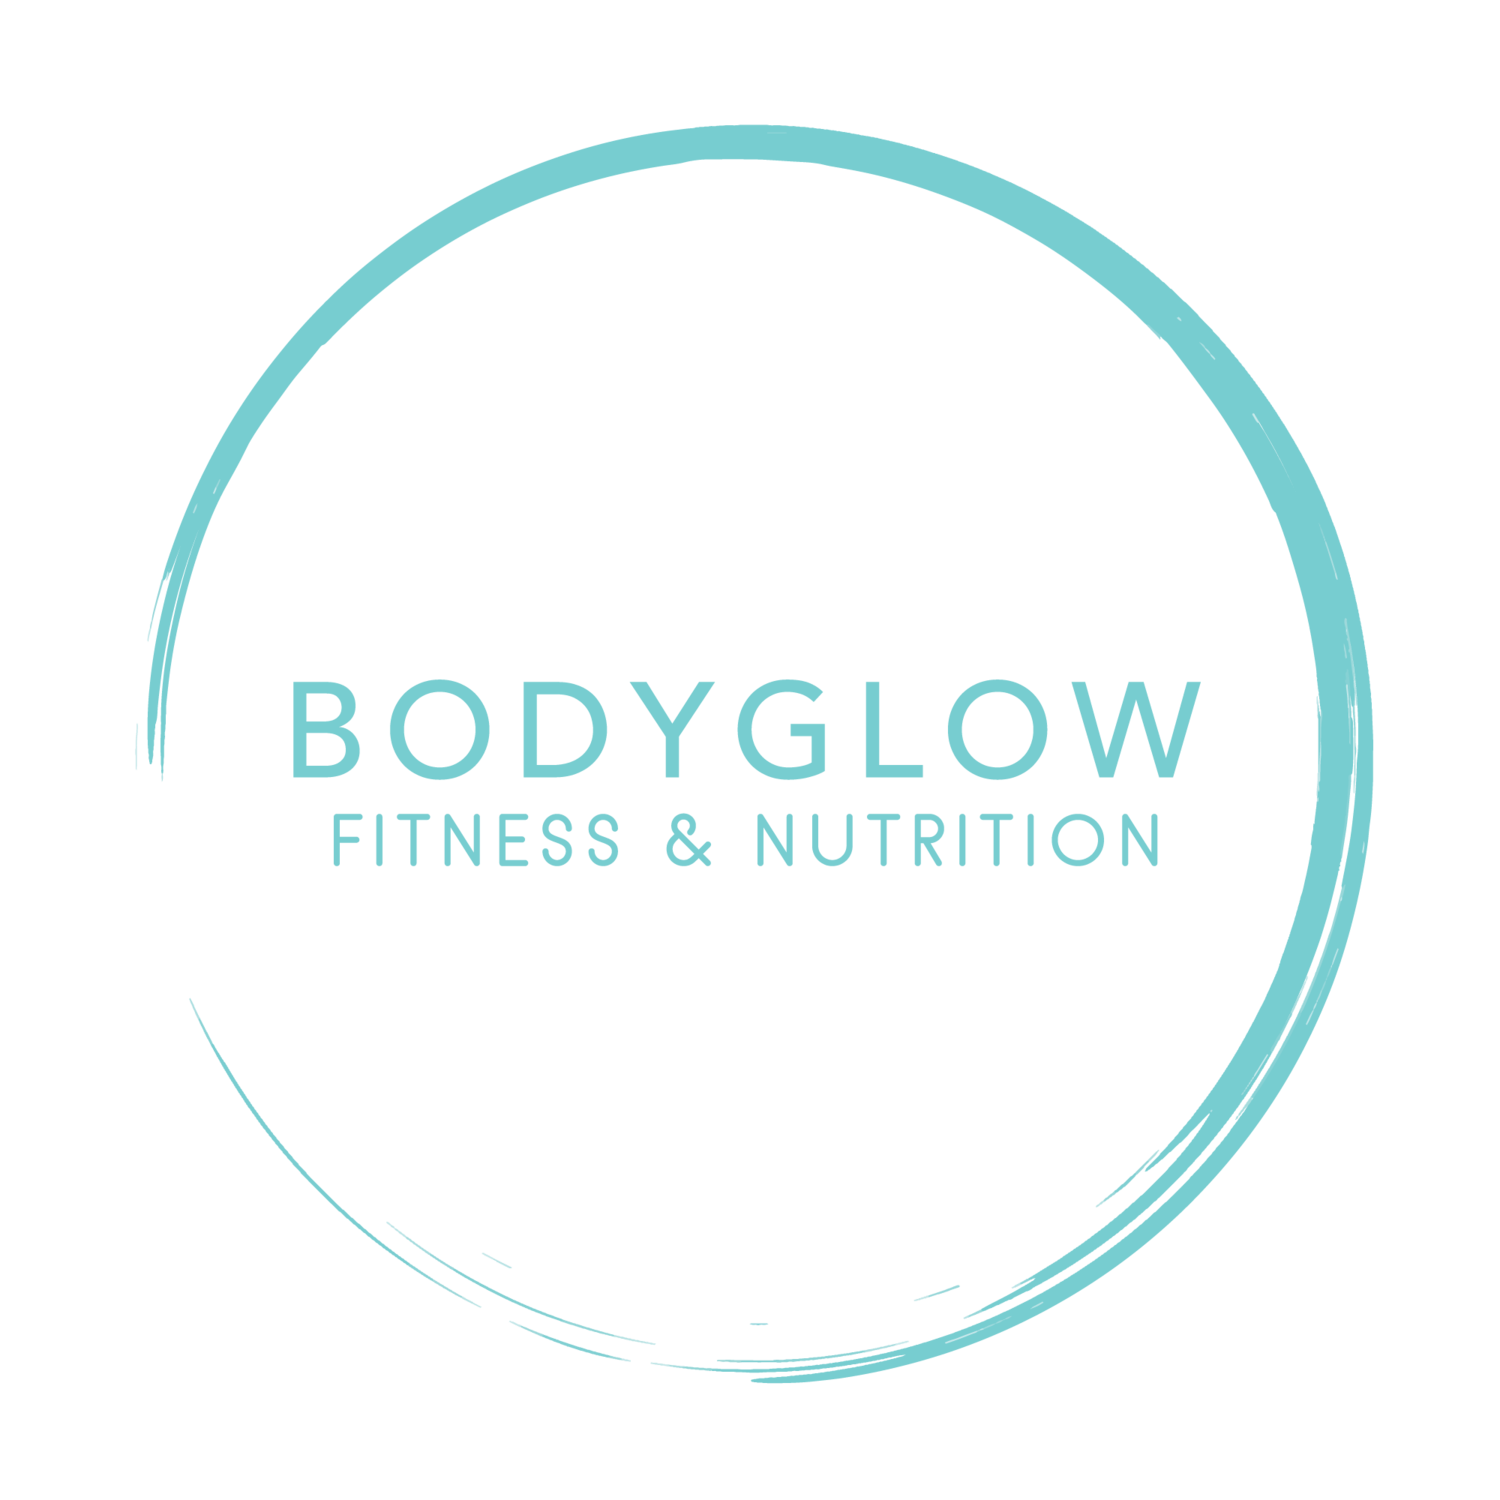 BODYGLOW| HEALTH COACHING FOR THE ACTIVE WOMAN